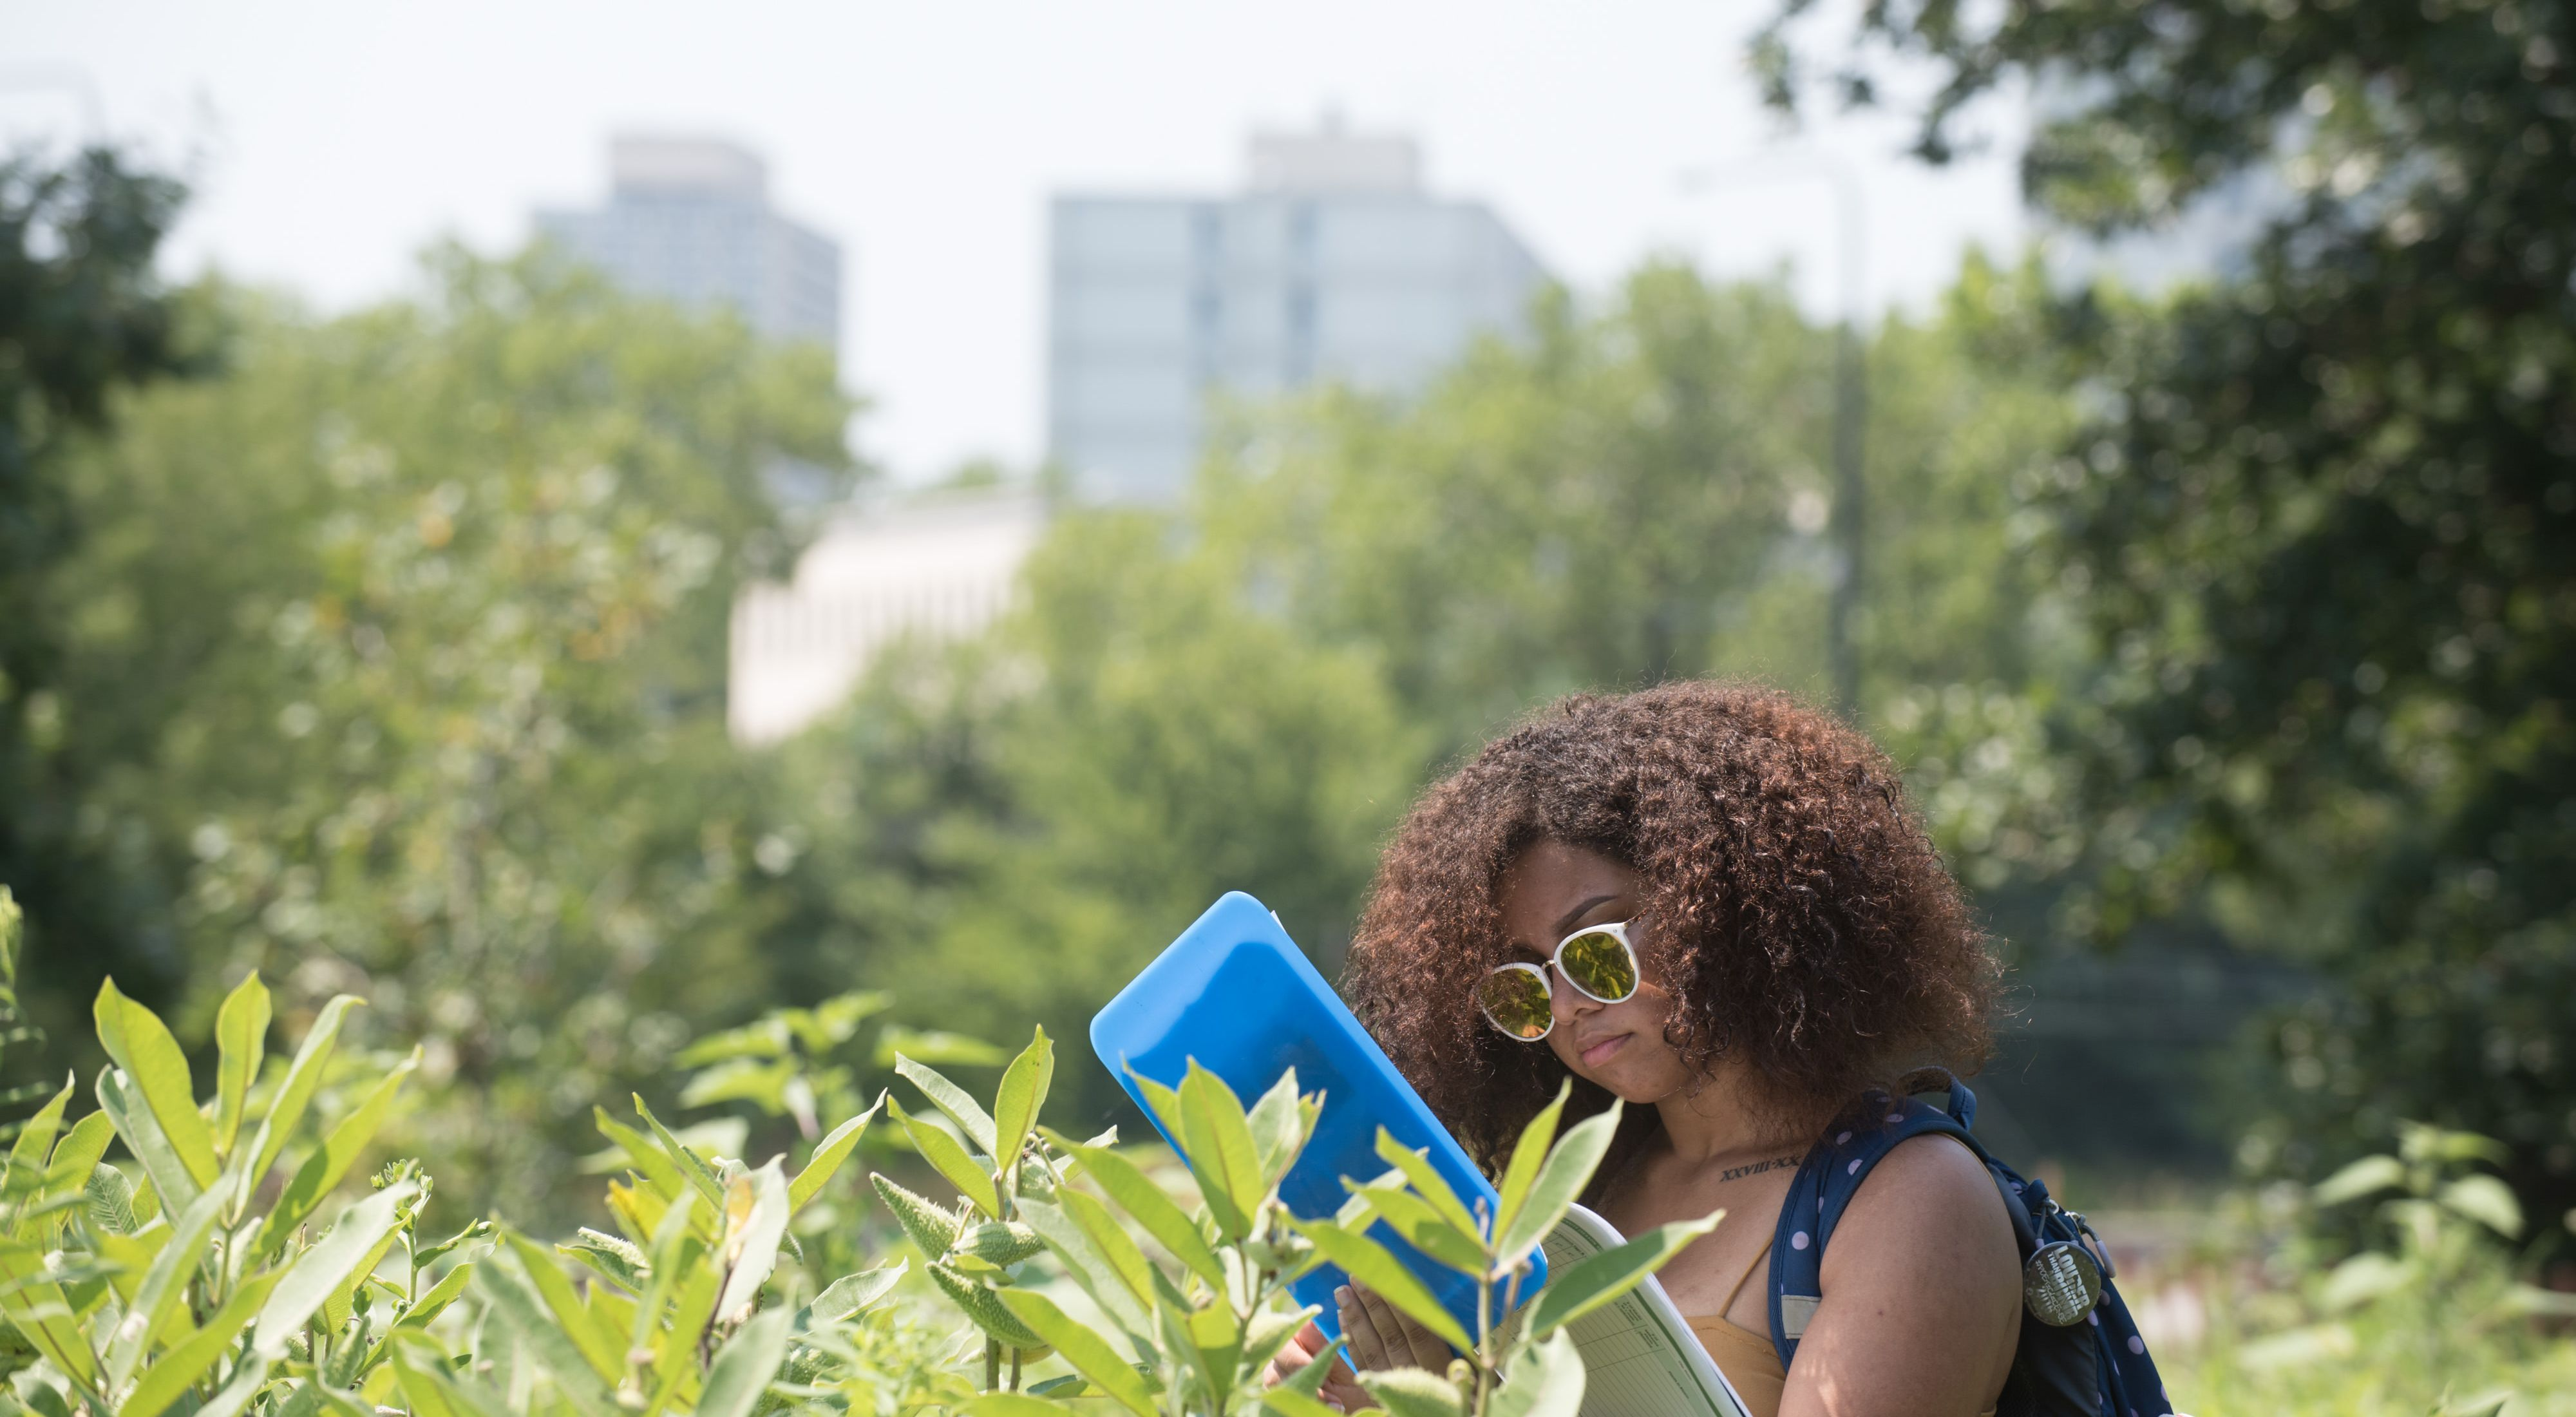 A woman checks her notebook while monitoring for monarch butterflies in a prairie with city buildings in the background